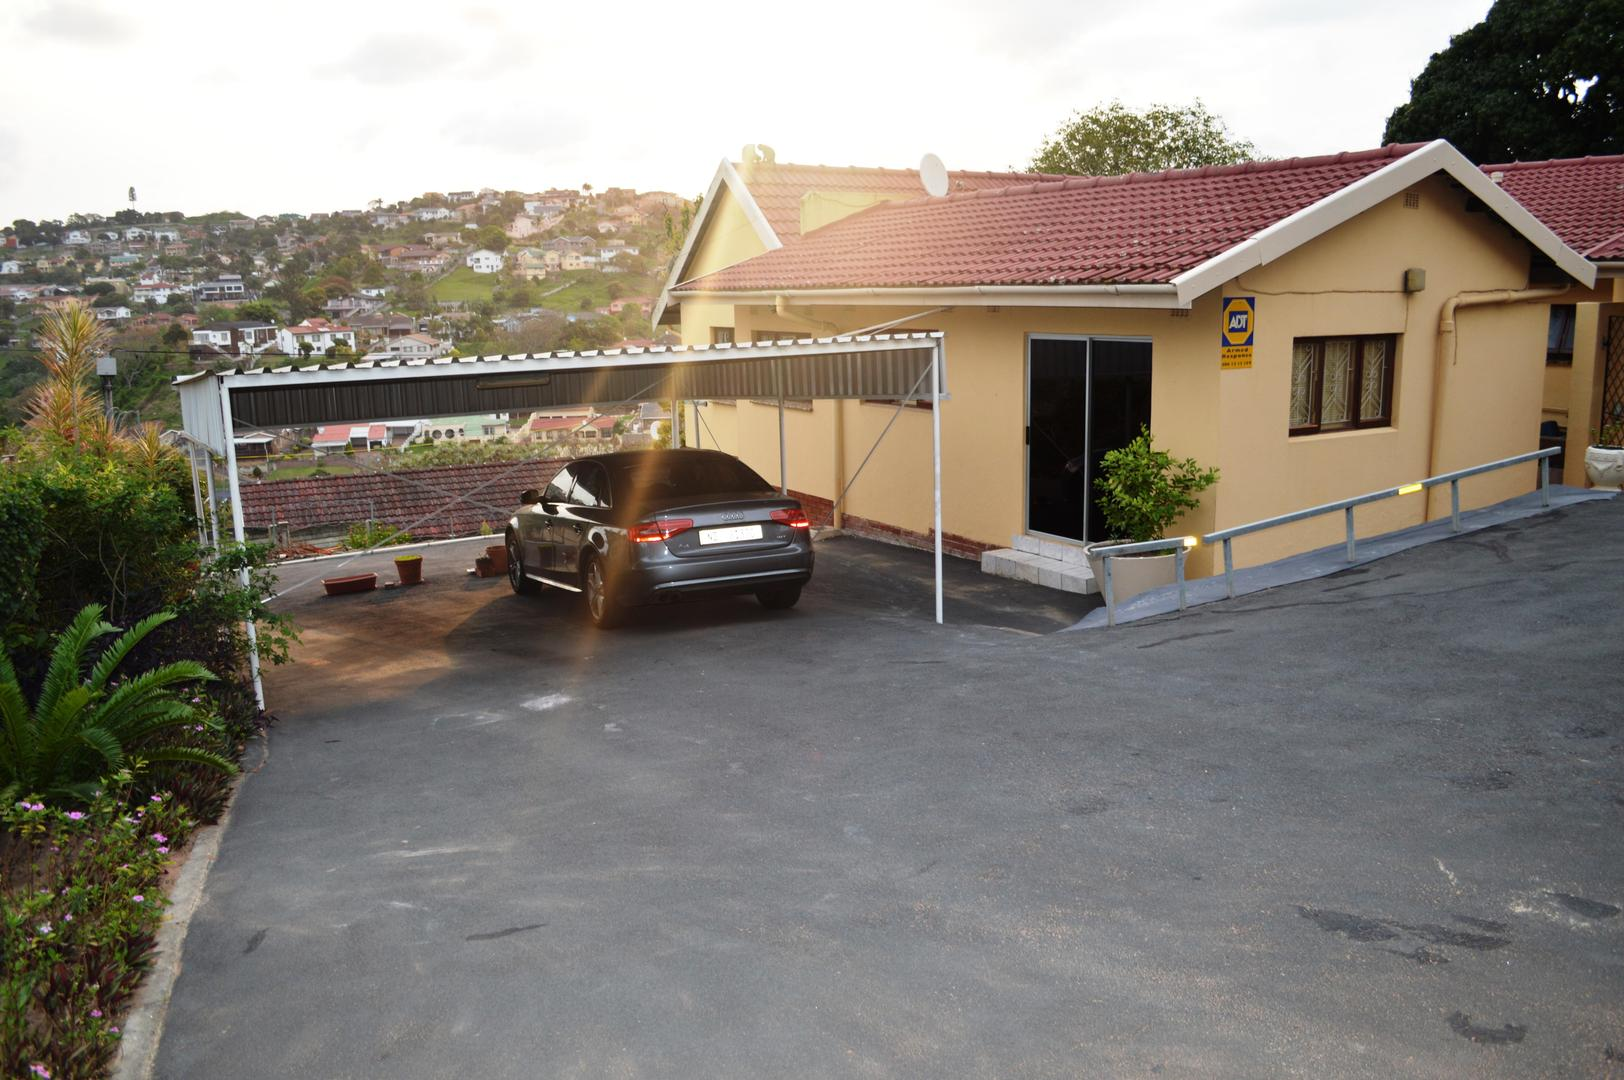 3 BedroomHouse For Sale In Chatsworth